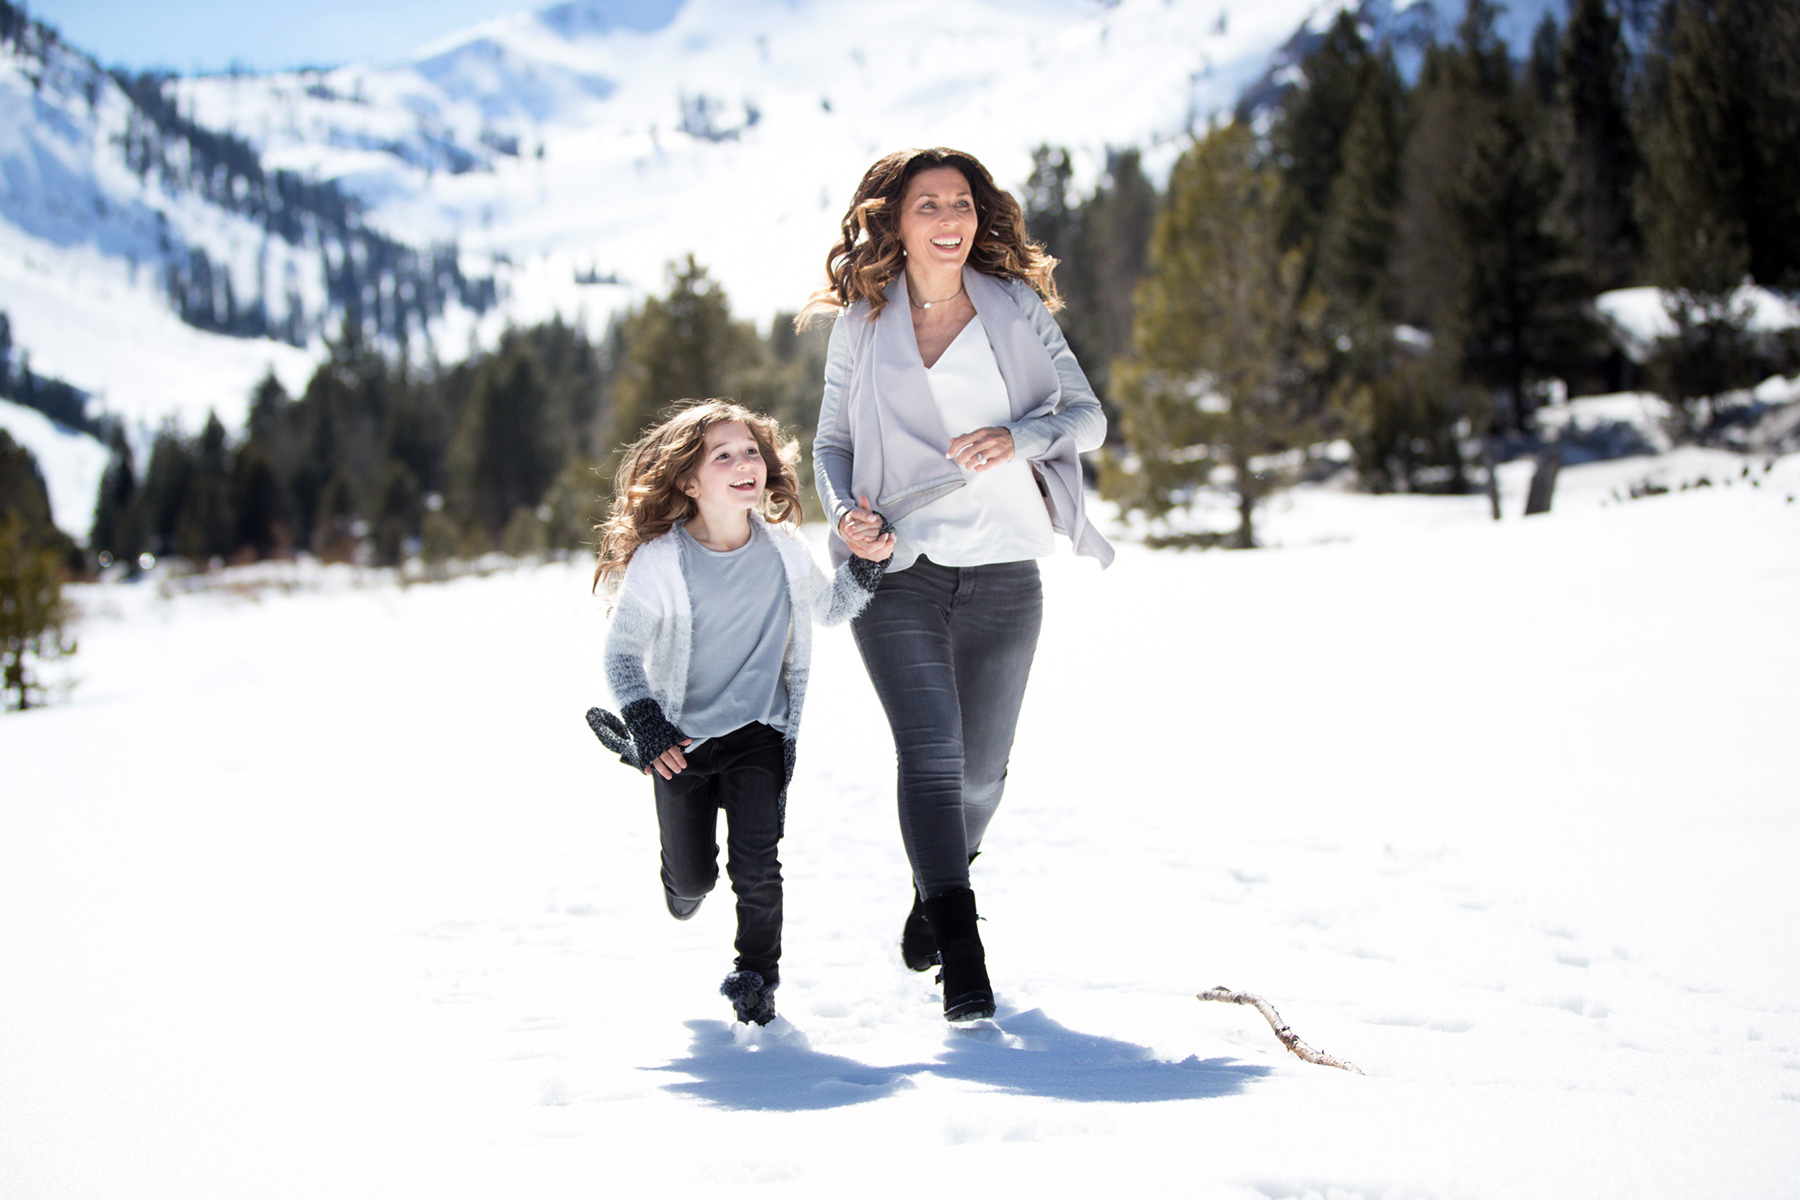 Winter-family-photos-Squaw-Valley-Lake-Tahoe